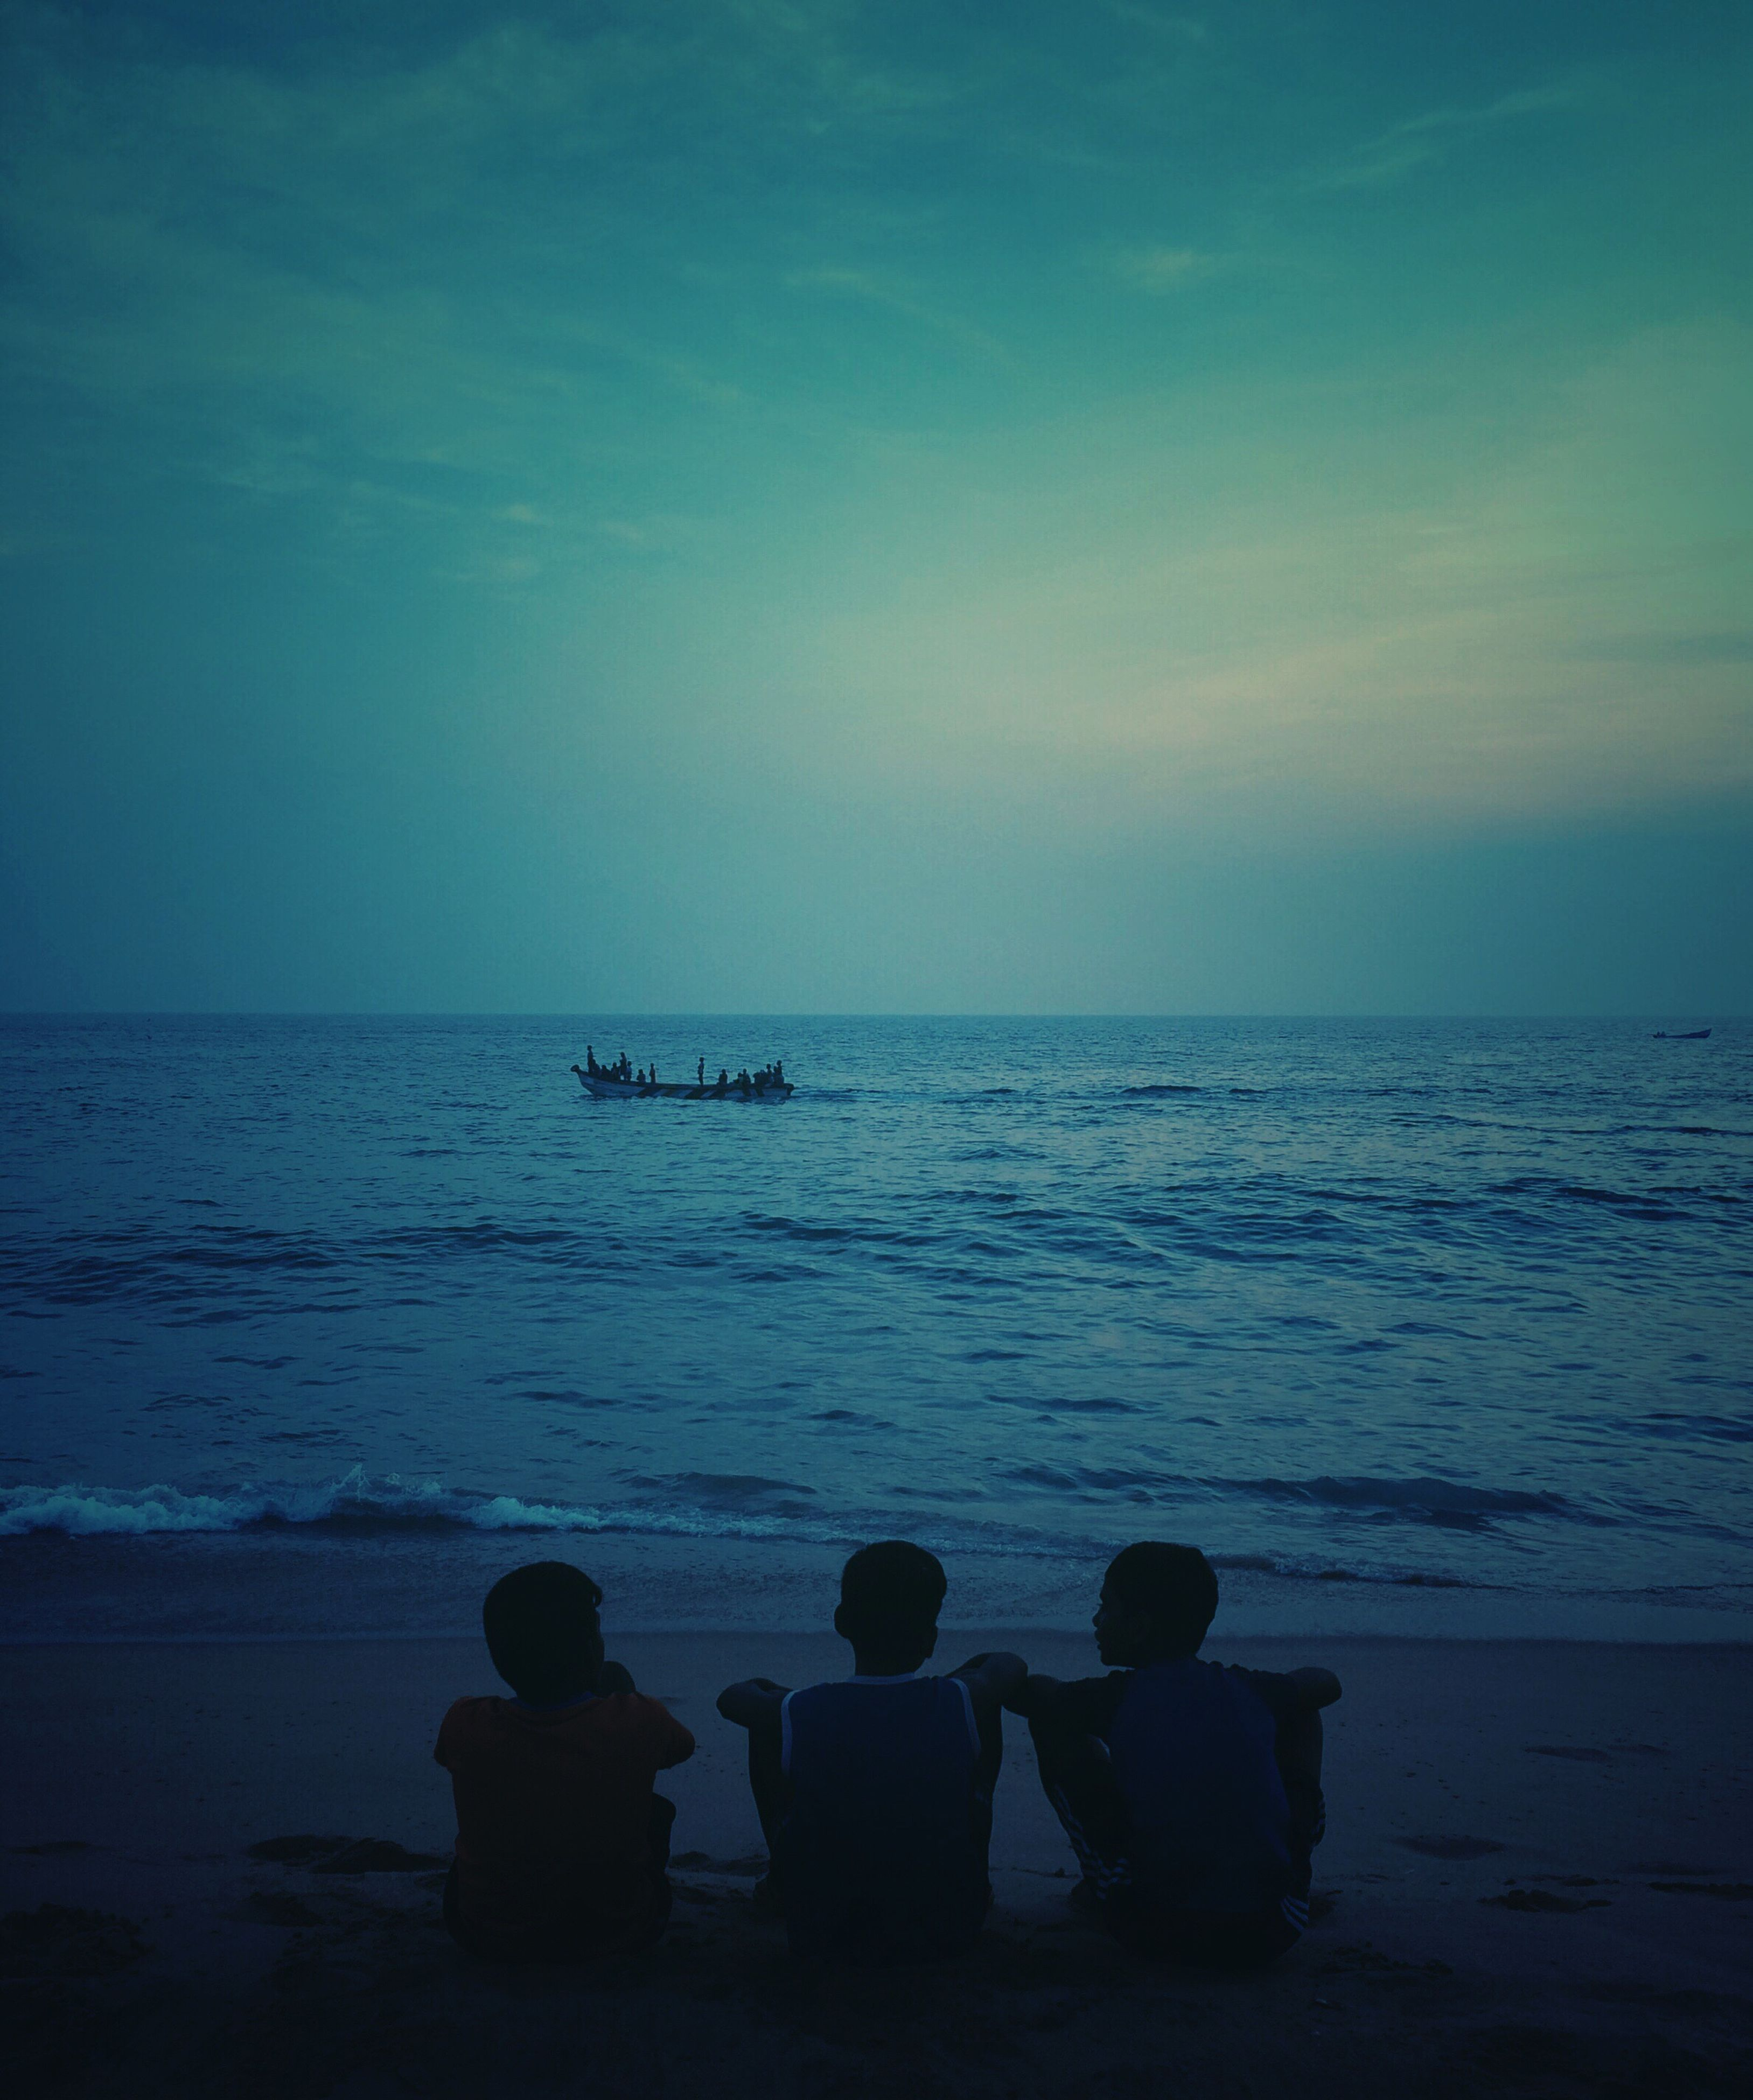 sea, water, real people, horizon over water, beauty in nature, beach, sky, lifestyles, scenics, leisure activity, women, tranquility, two people, silhouette, togetherness, tranquil scene, men, nature, outdoors, people, adult, day